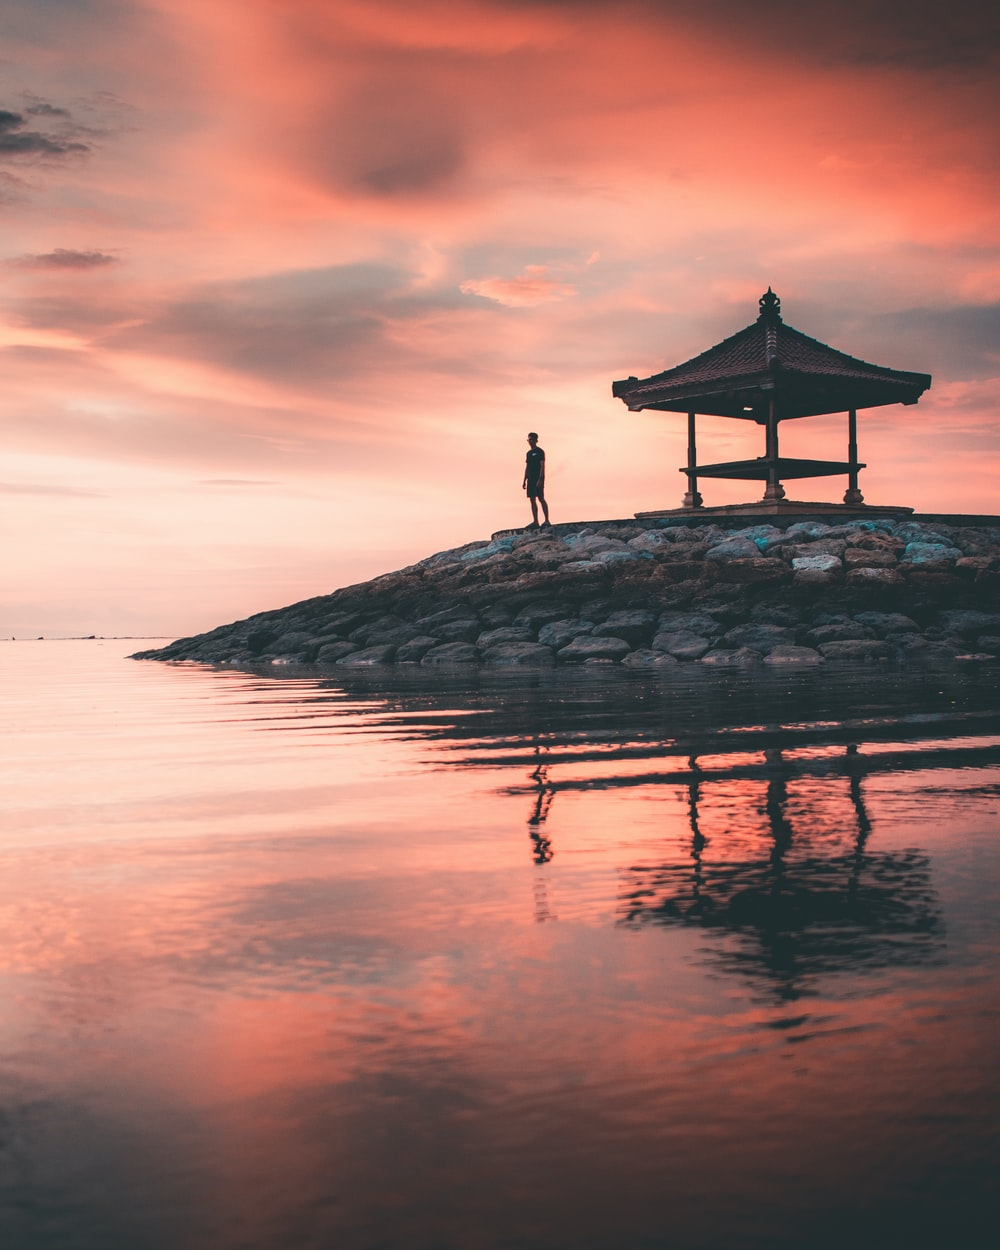 person standing on rock formation near body of water during sunset